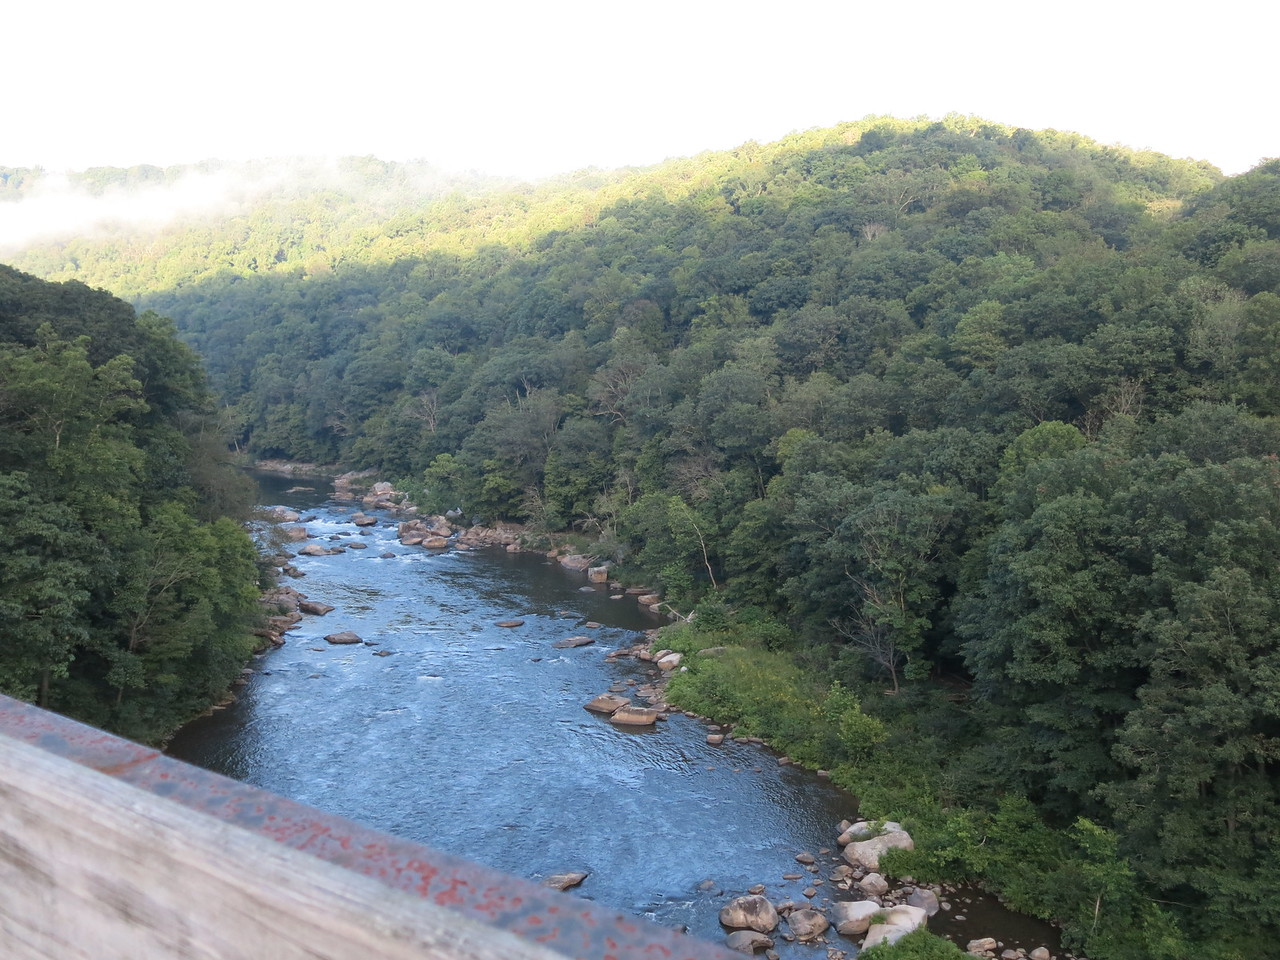 Upstream view of the Yough from High Bridge